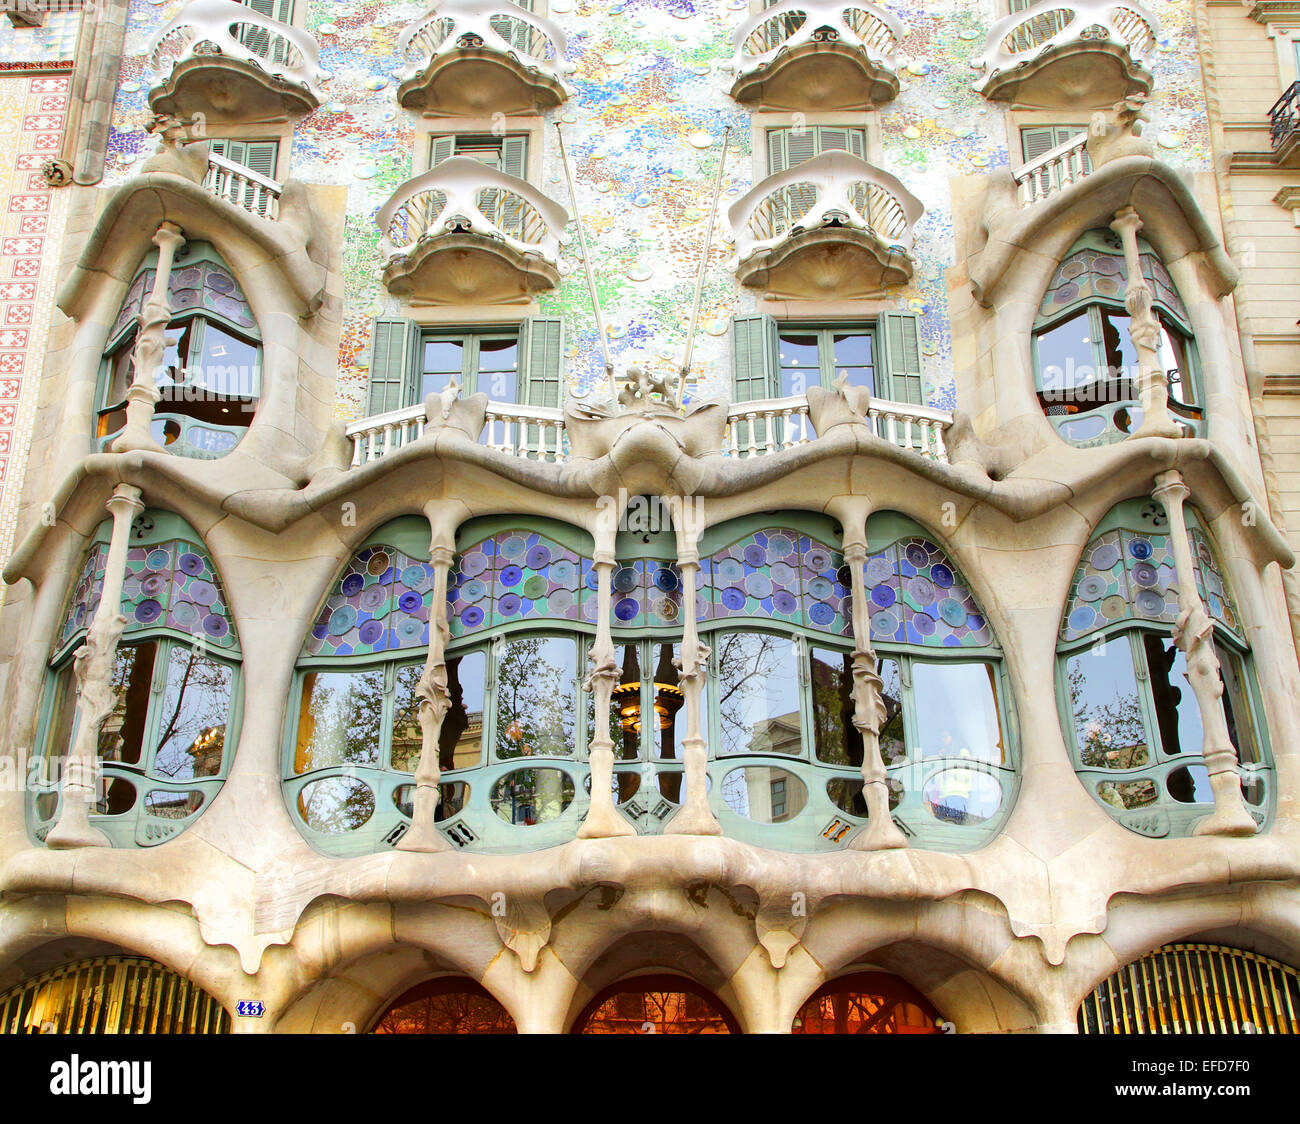 Gaudi Antoni Casa Batllo Mila Window Spanish Architecture Beautiful Vintage Modernism Pedrera Famous Balcony Glass Catalonia Art